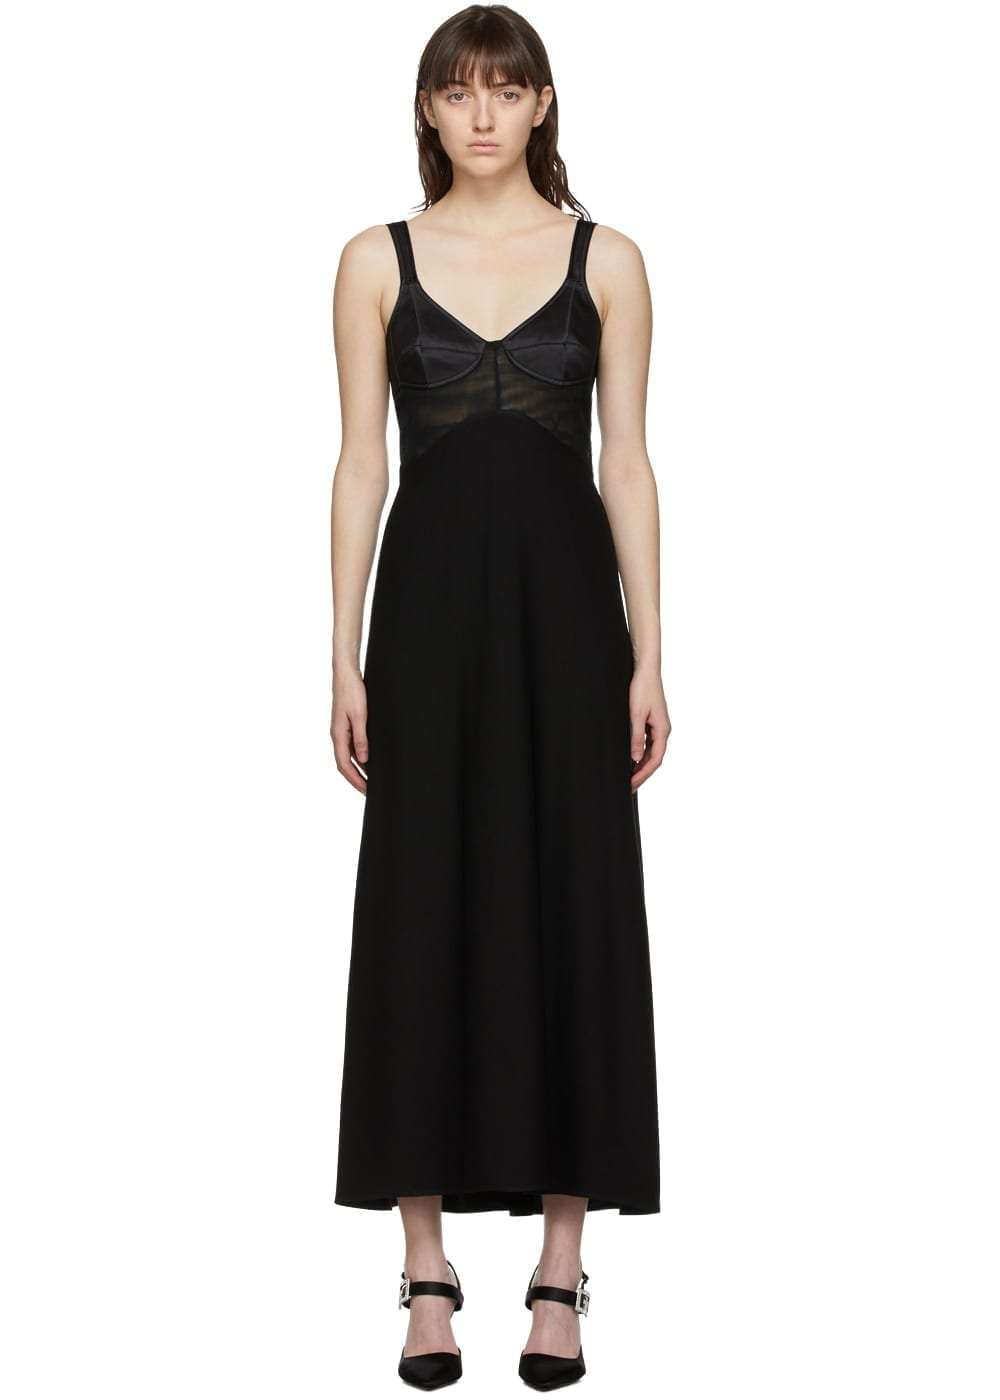 VICTORIA BECKHAM Black Insert Cami Midi Dress